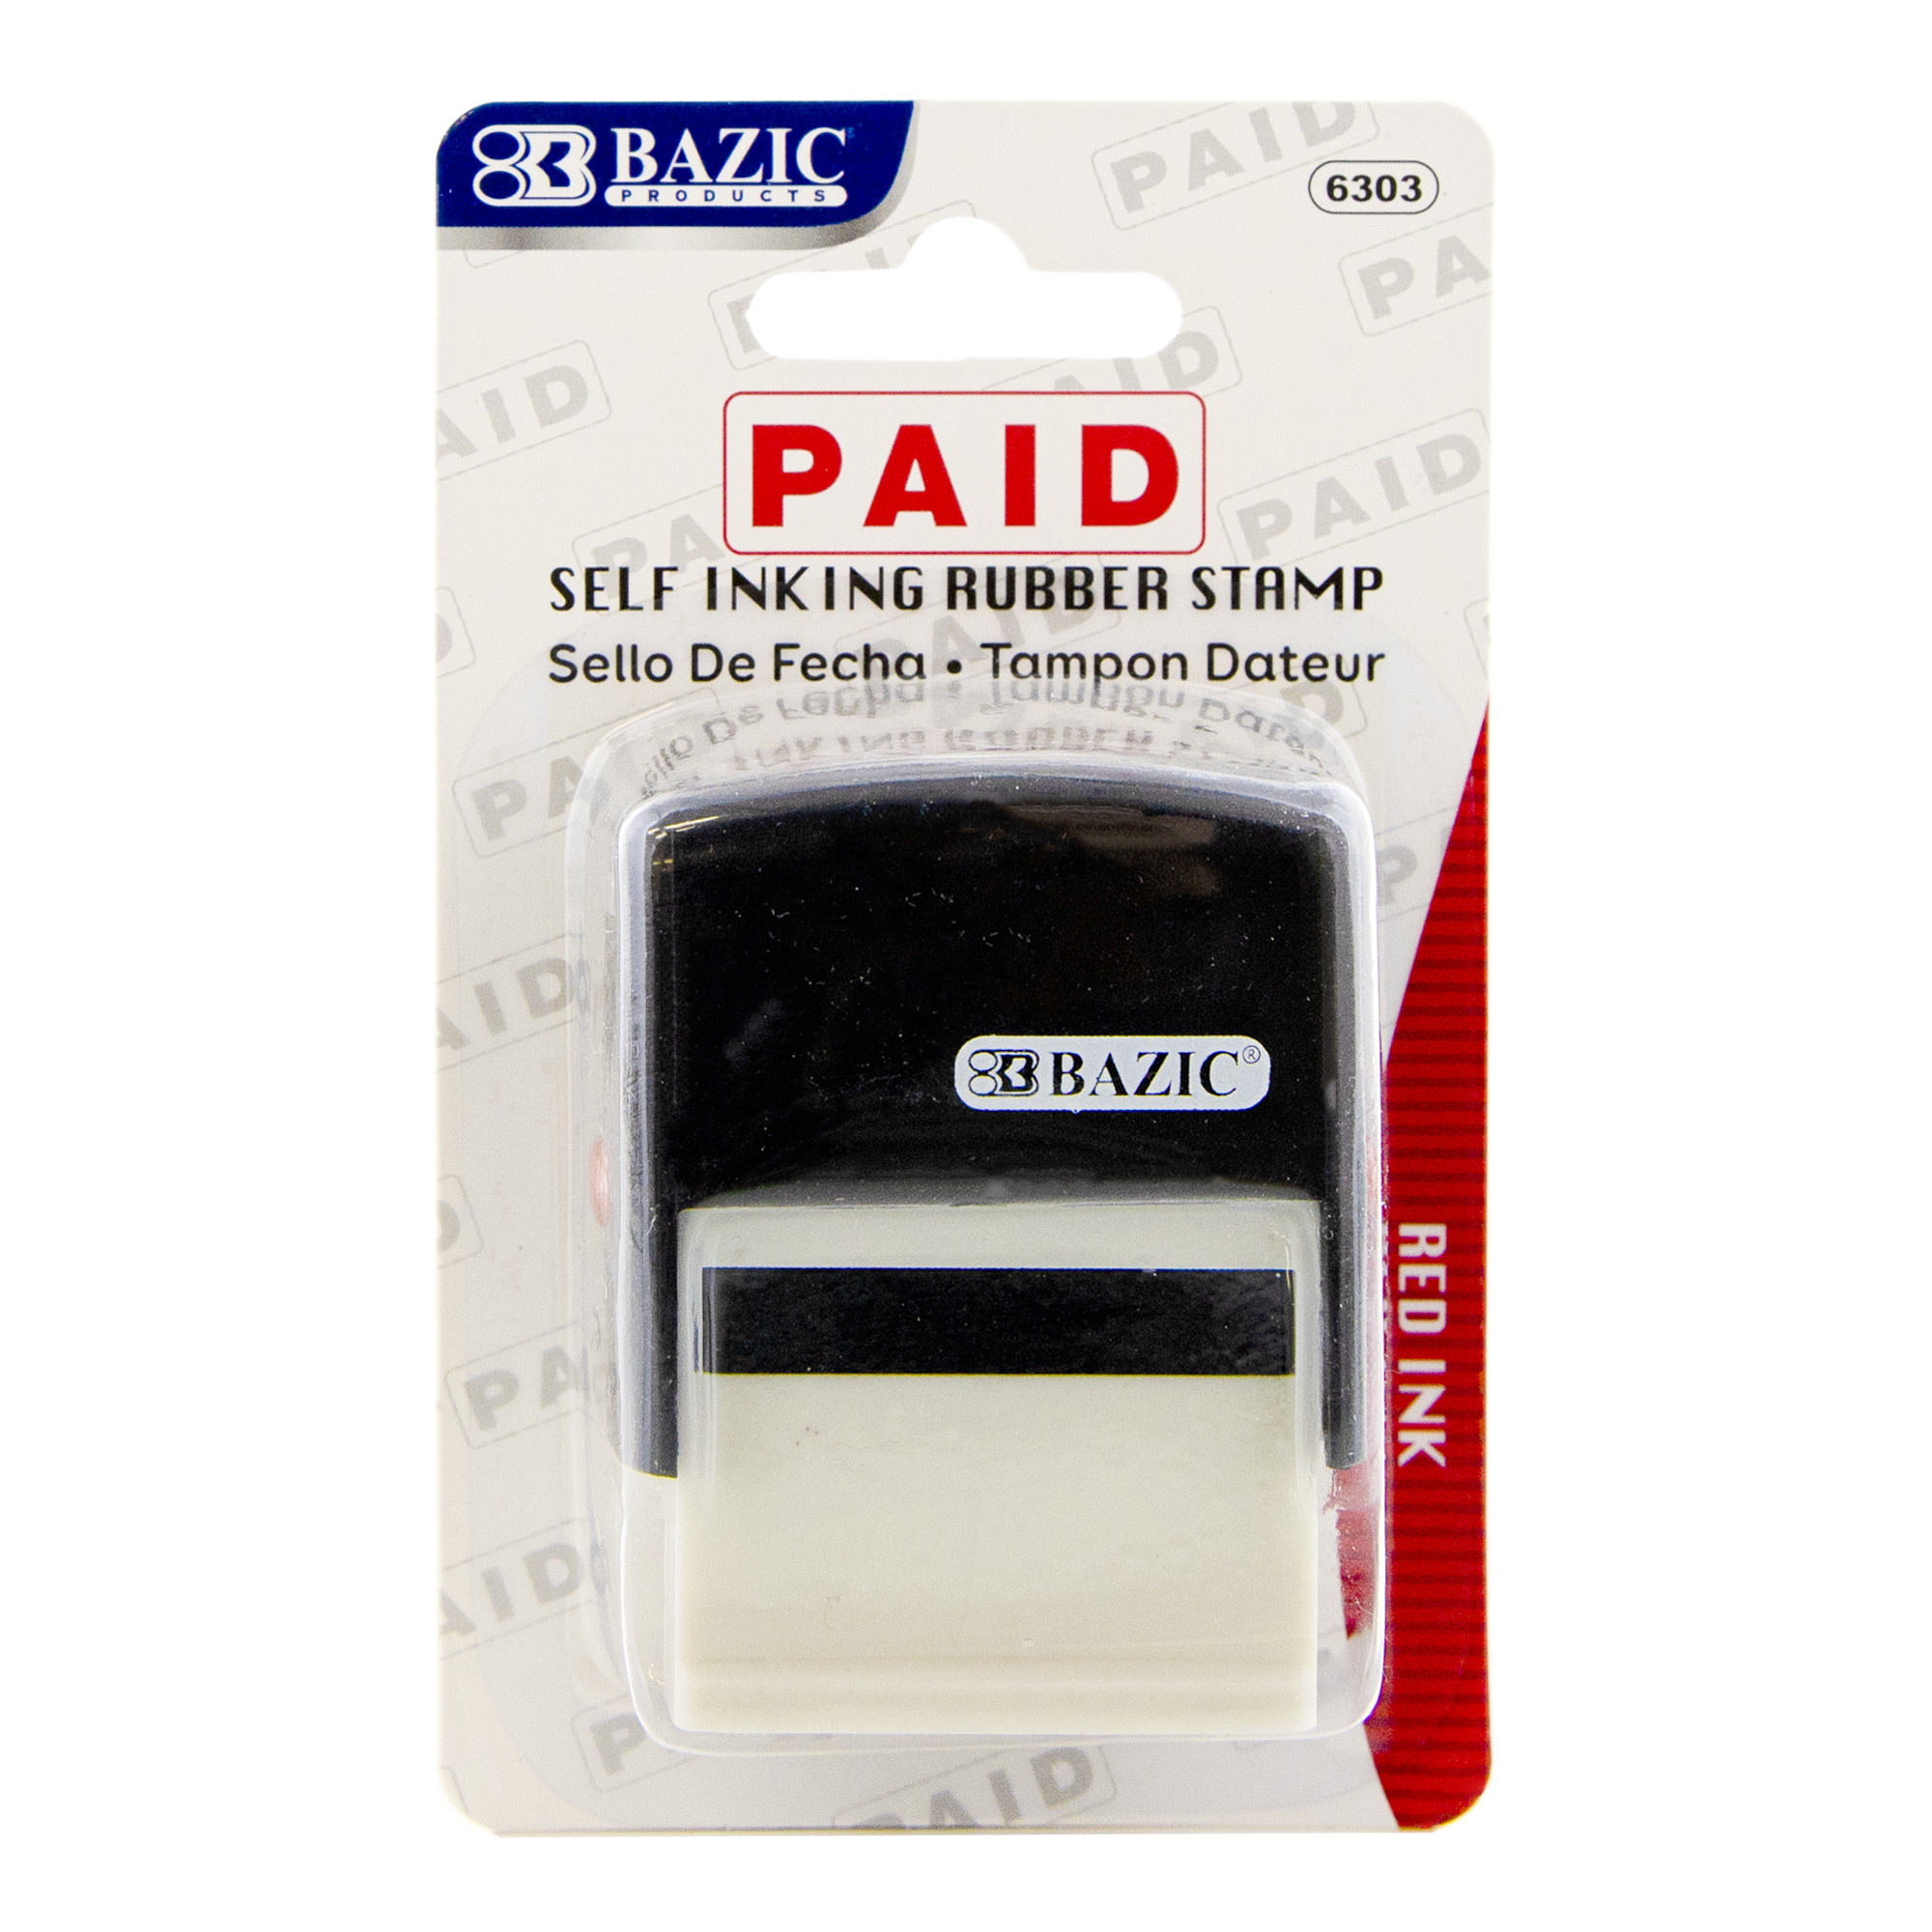 BAZIC Paid Self Inking Rubber Stamp (Red Ink)